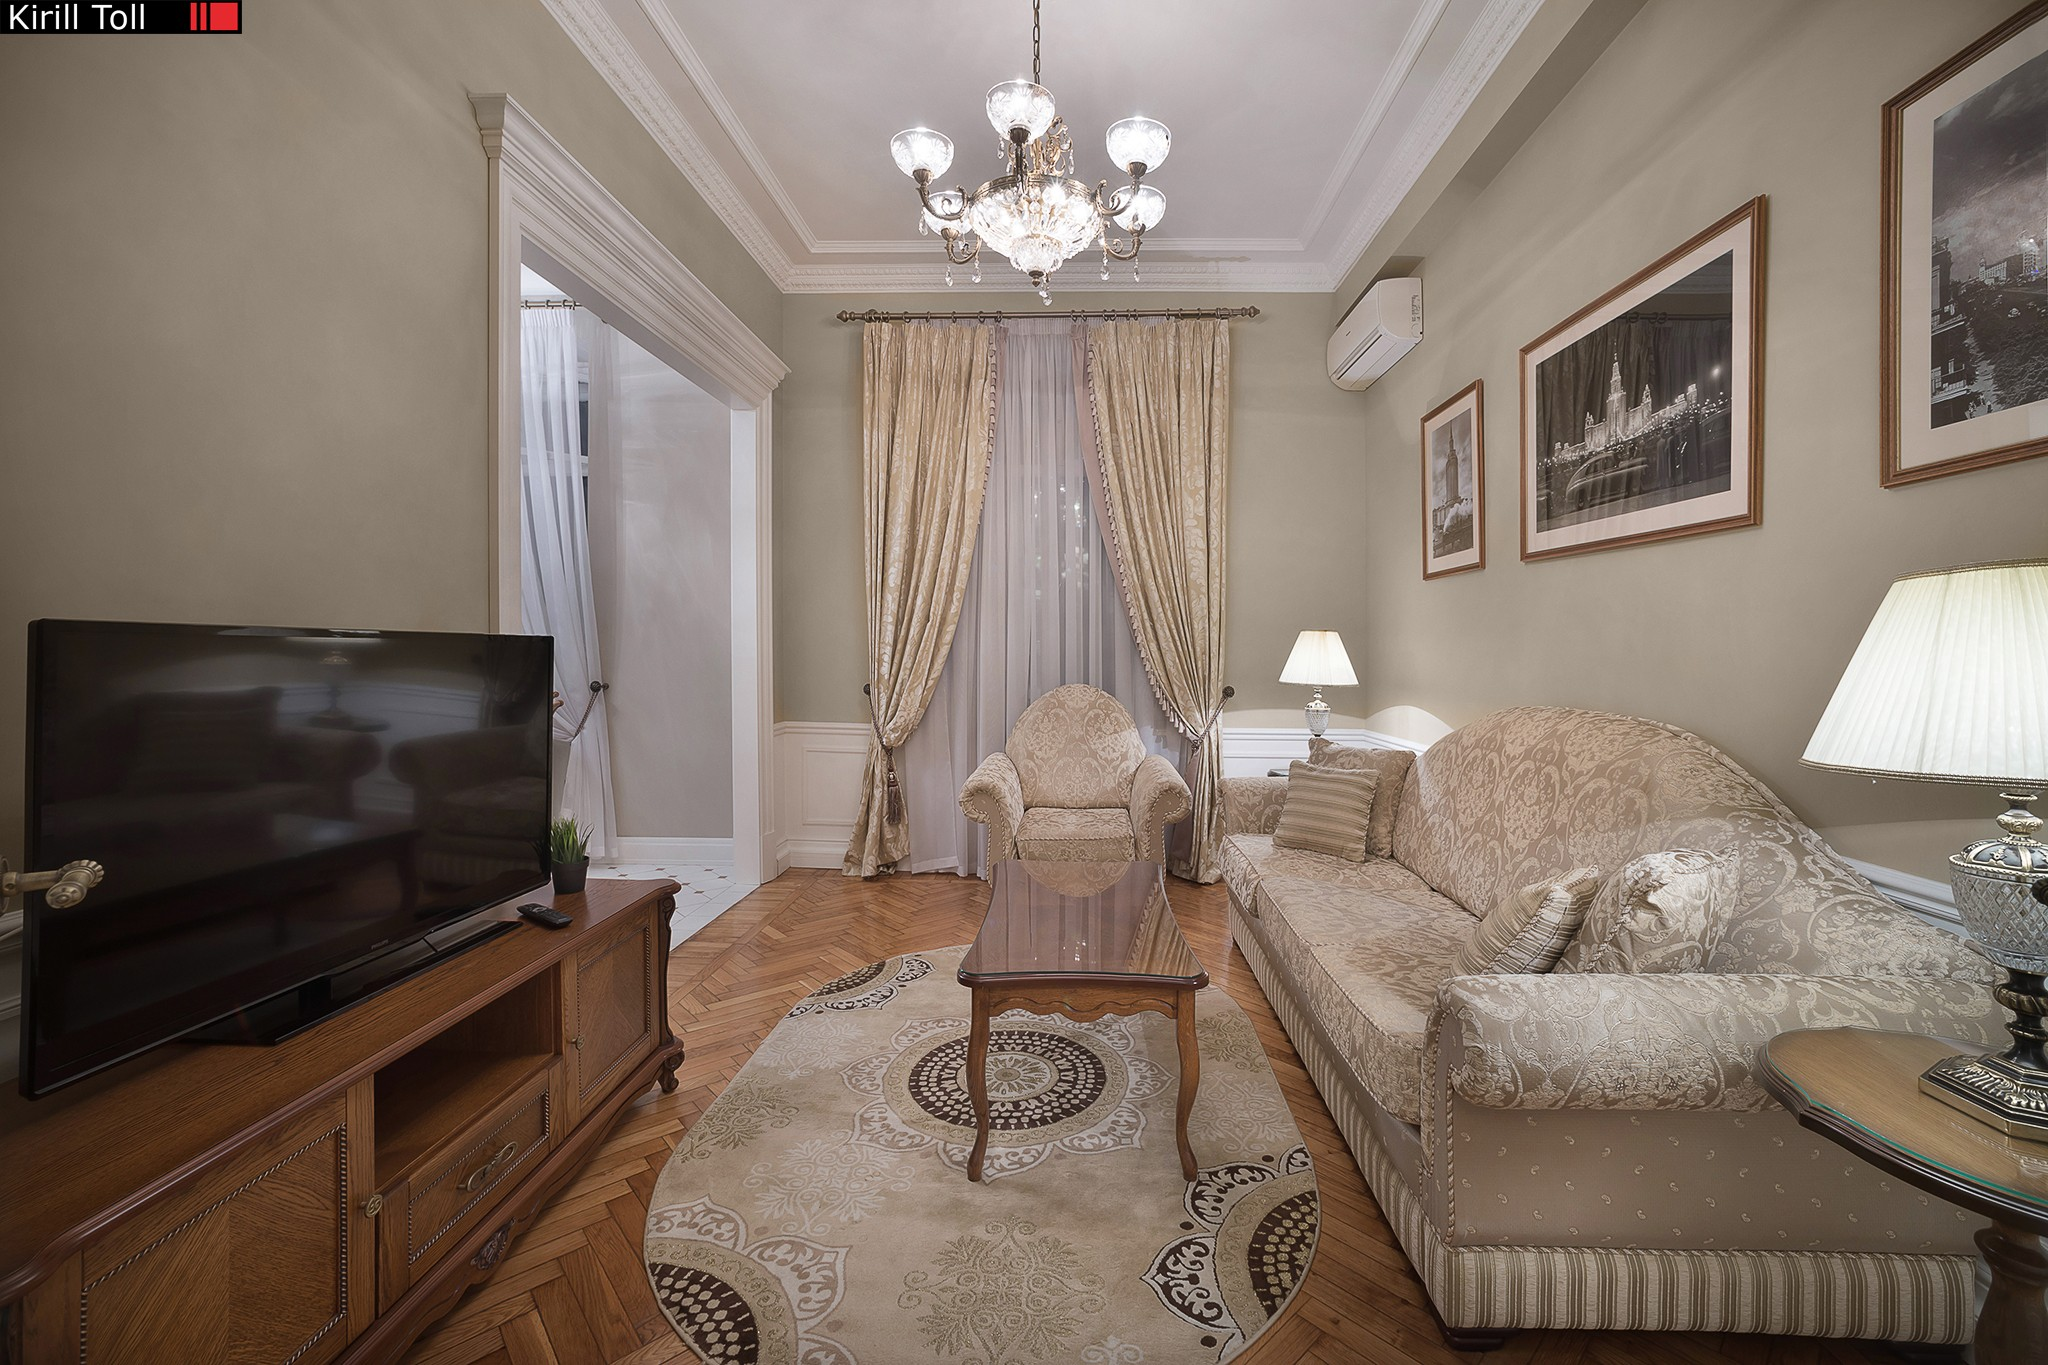 Interior photography of apportionments for rent in Moscow. Photographer Kirill Toll